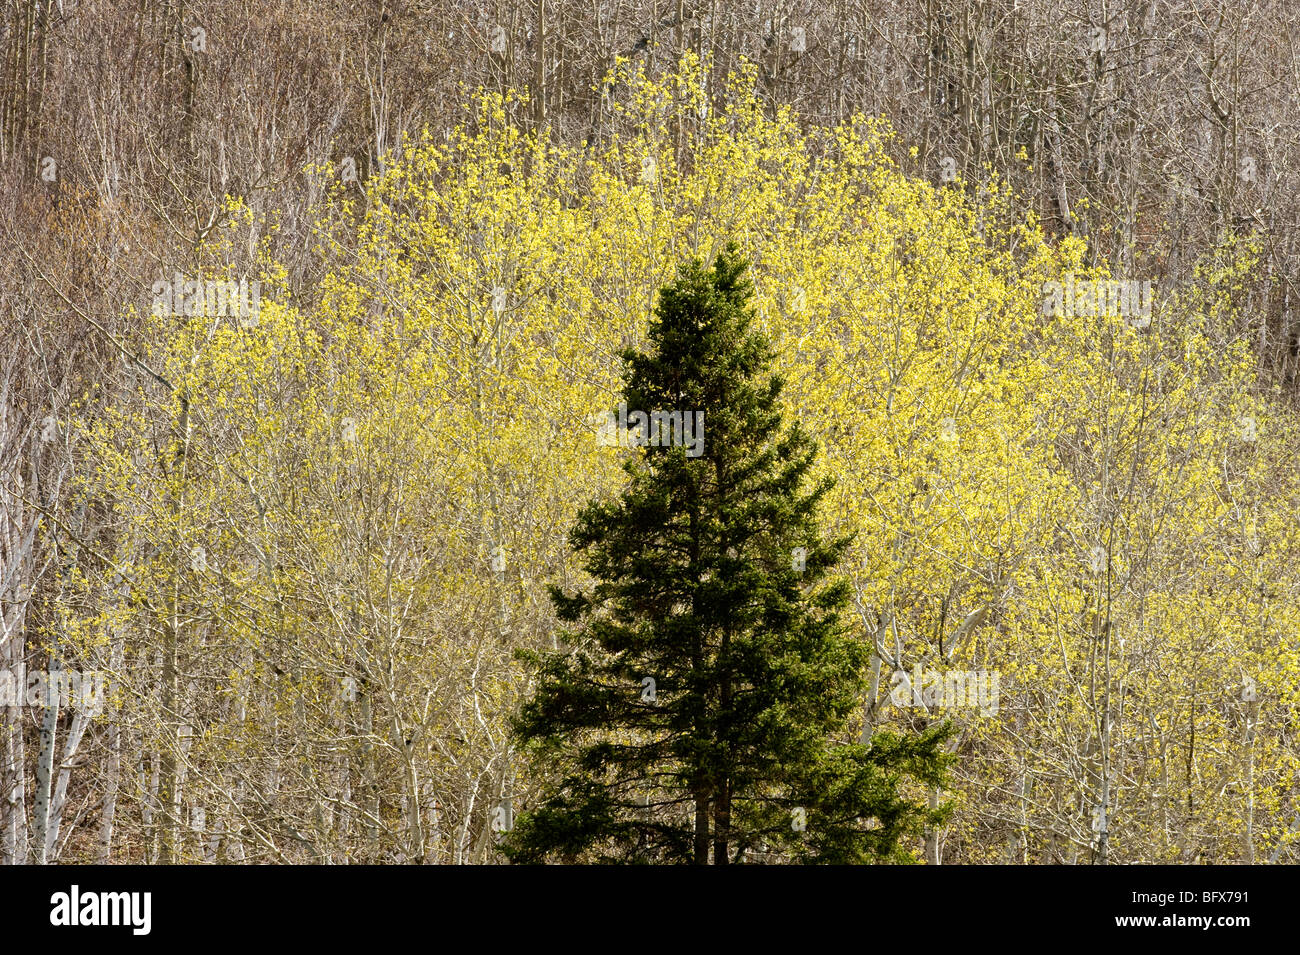 Emerging spring foliage in aspens, with spruce tree, Greater Sudbury, Ontario, Canada - Stock Image